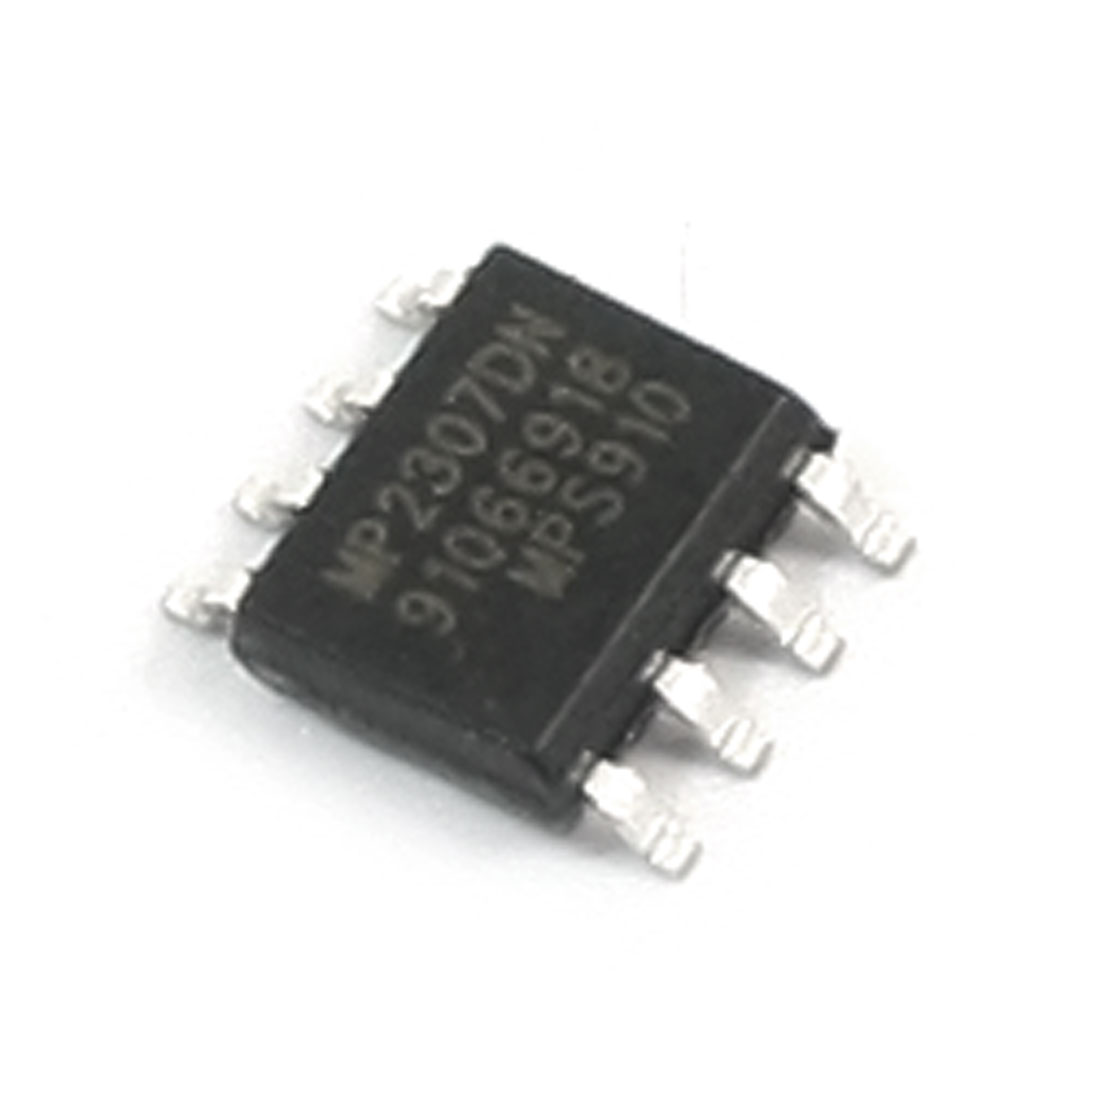 MP2307 SOP-8 SMD SMT Type DC/DC Step-down Power Supply Module Integrated Circuit IC Chip